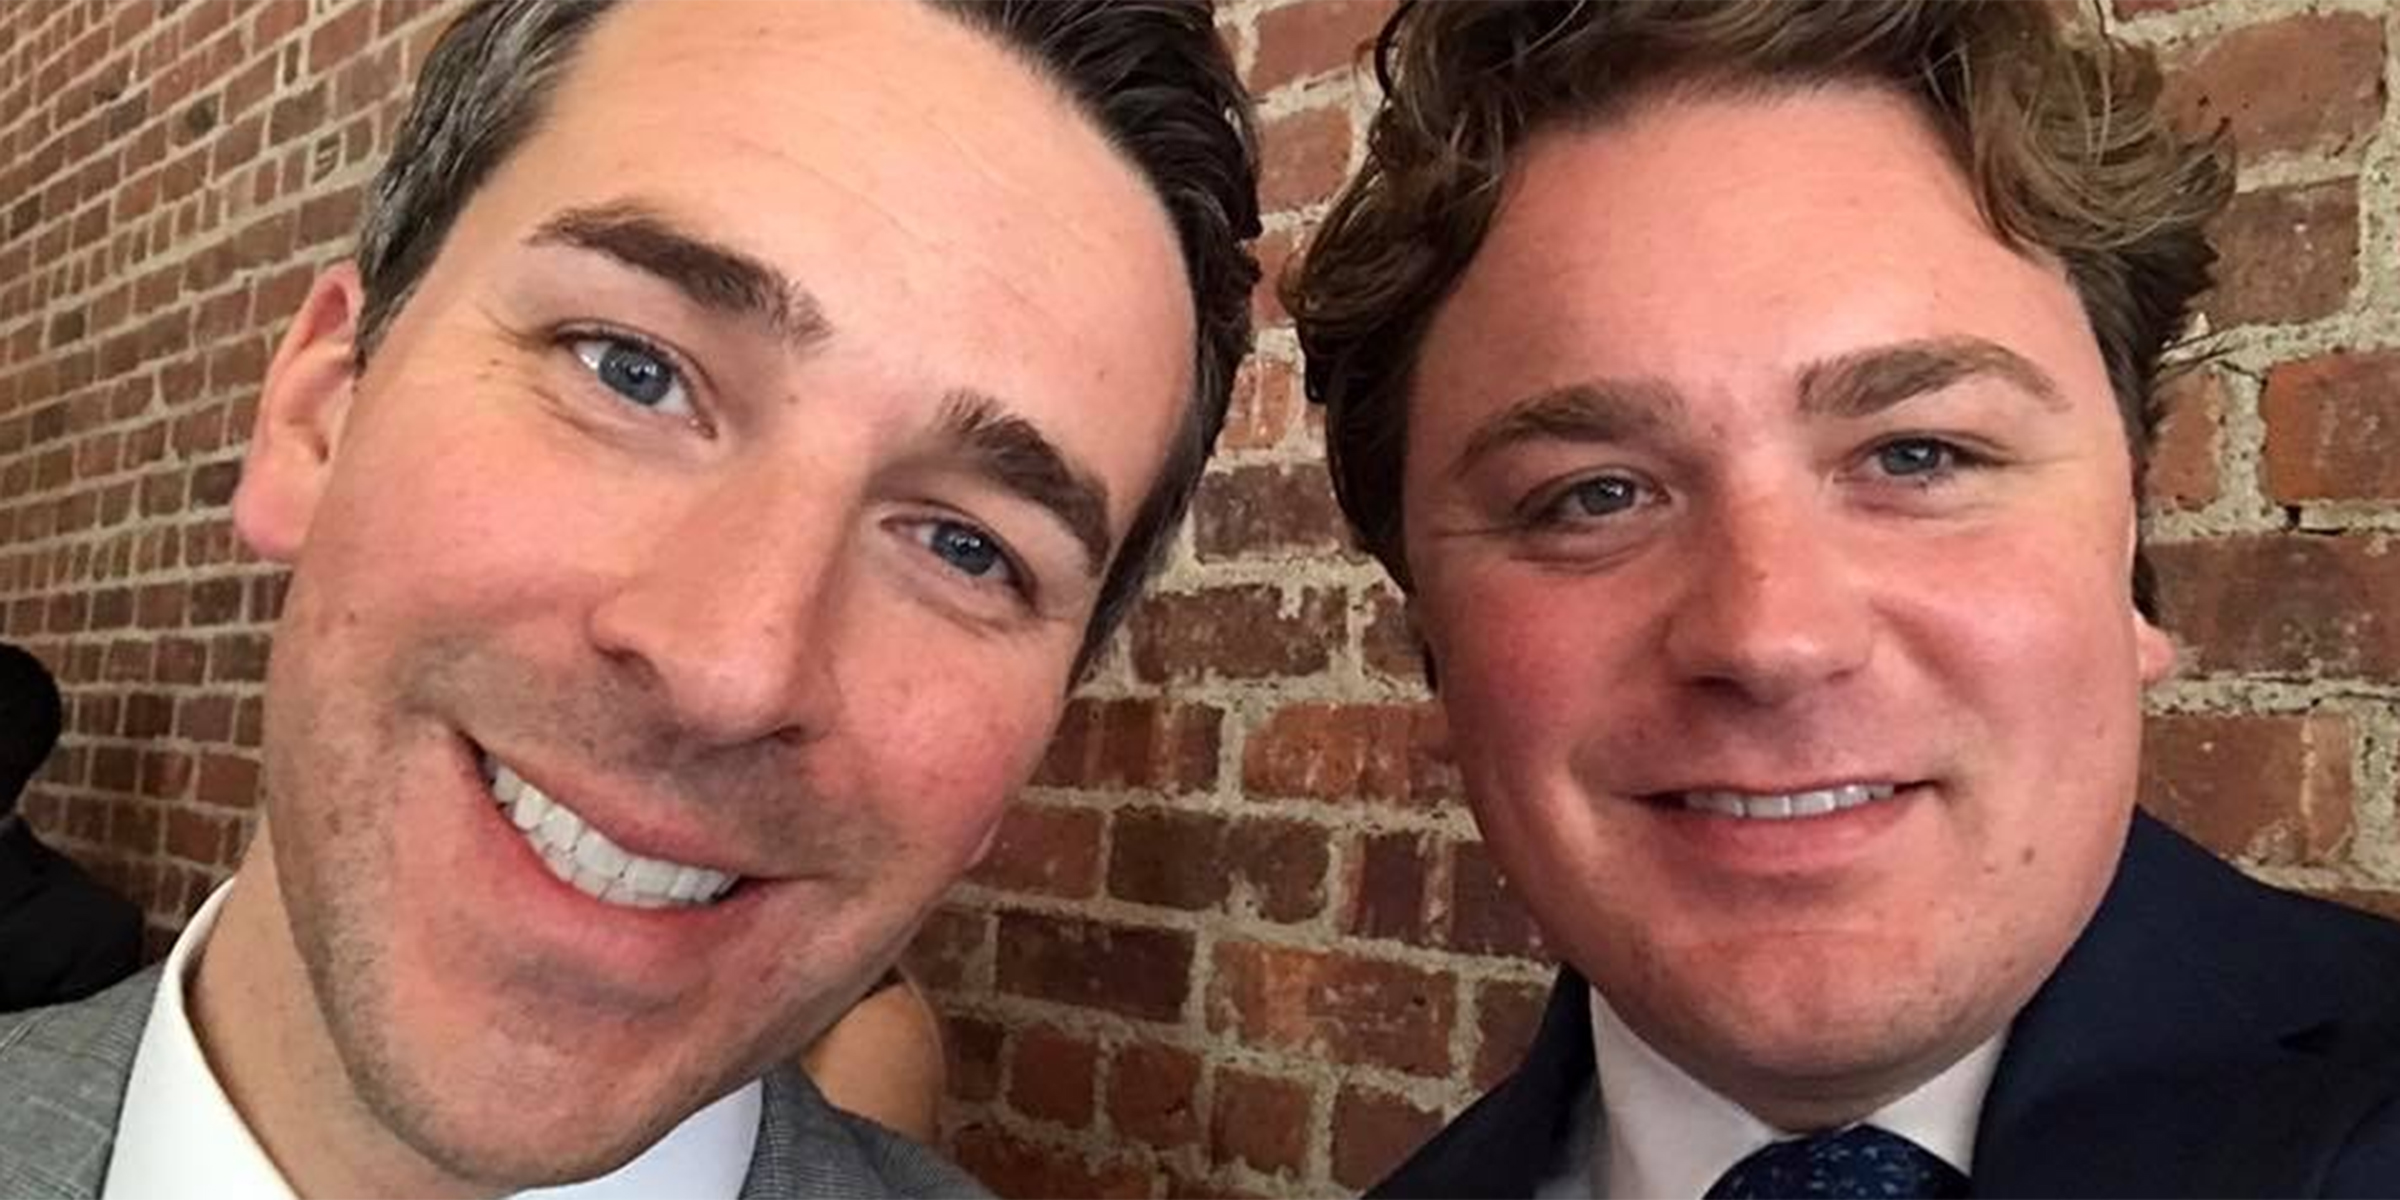 NBC correspondent Joe Fryer looks back on coming out: 'Visibility is vital'